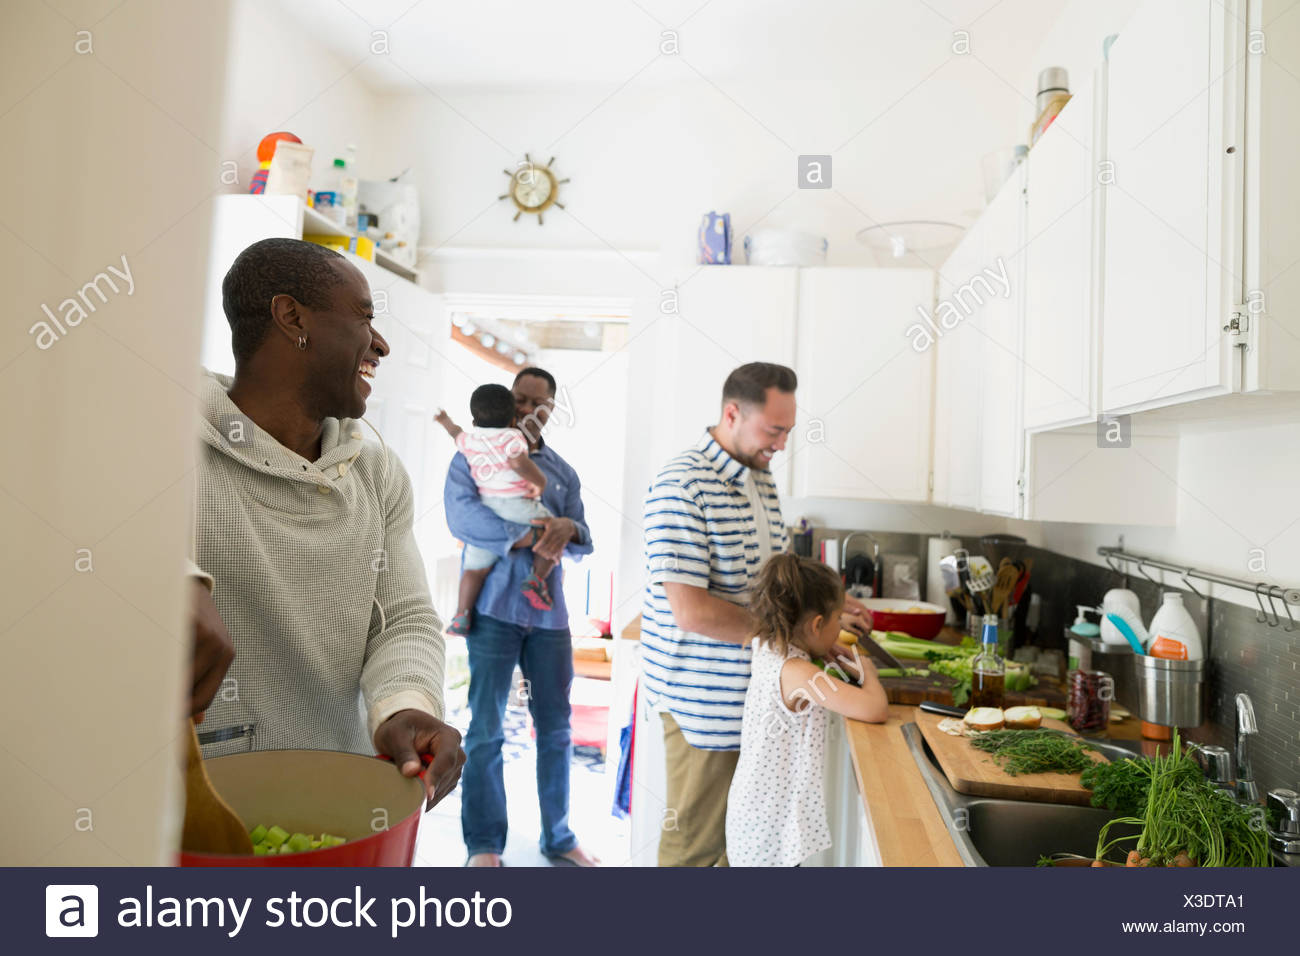 Fathers and children cooking in kitchen - Stock Image